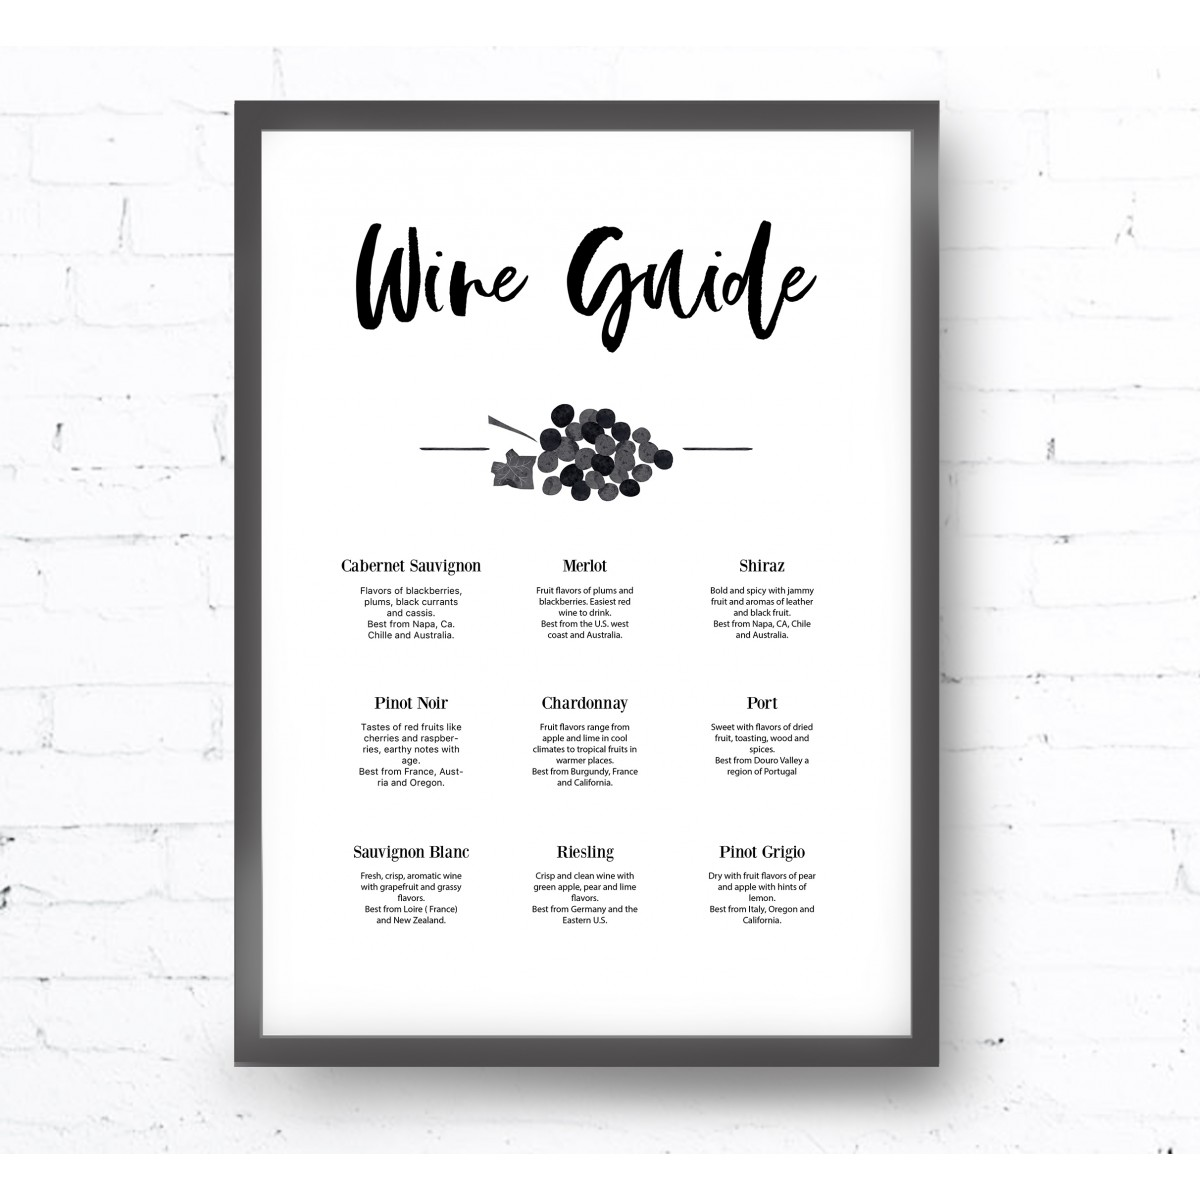 Kruth Design POSTER / WINE GUIDE